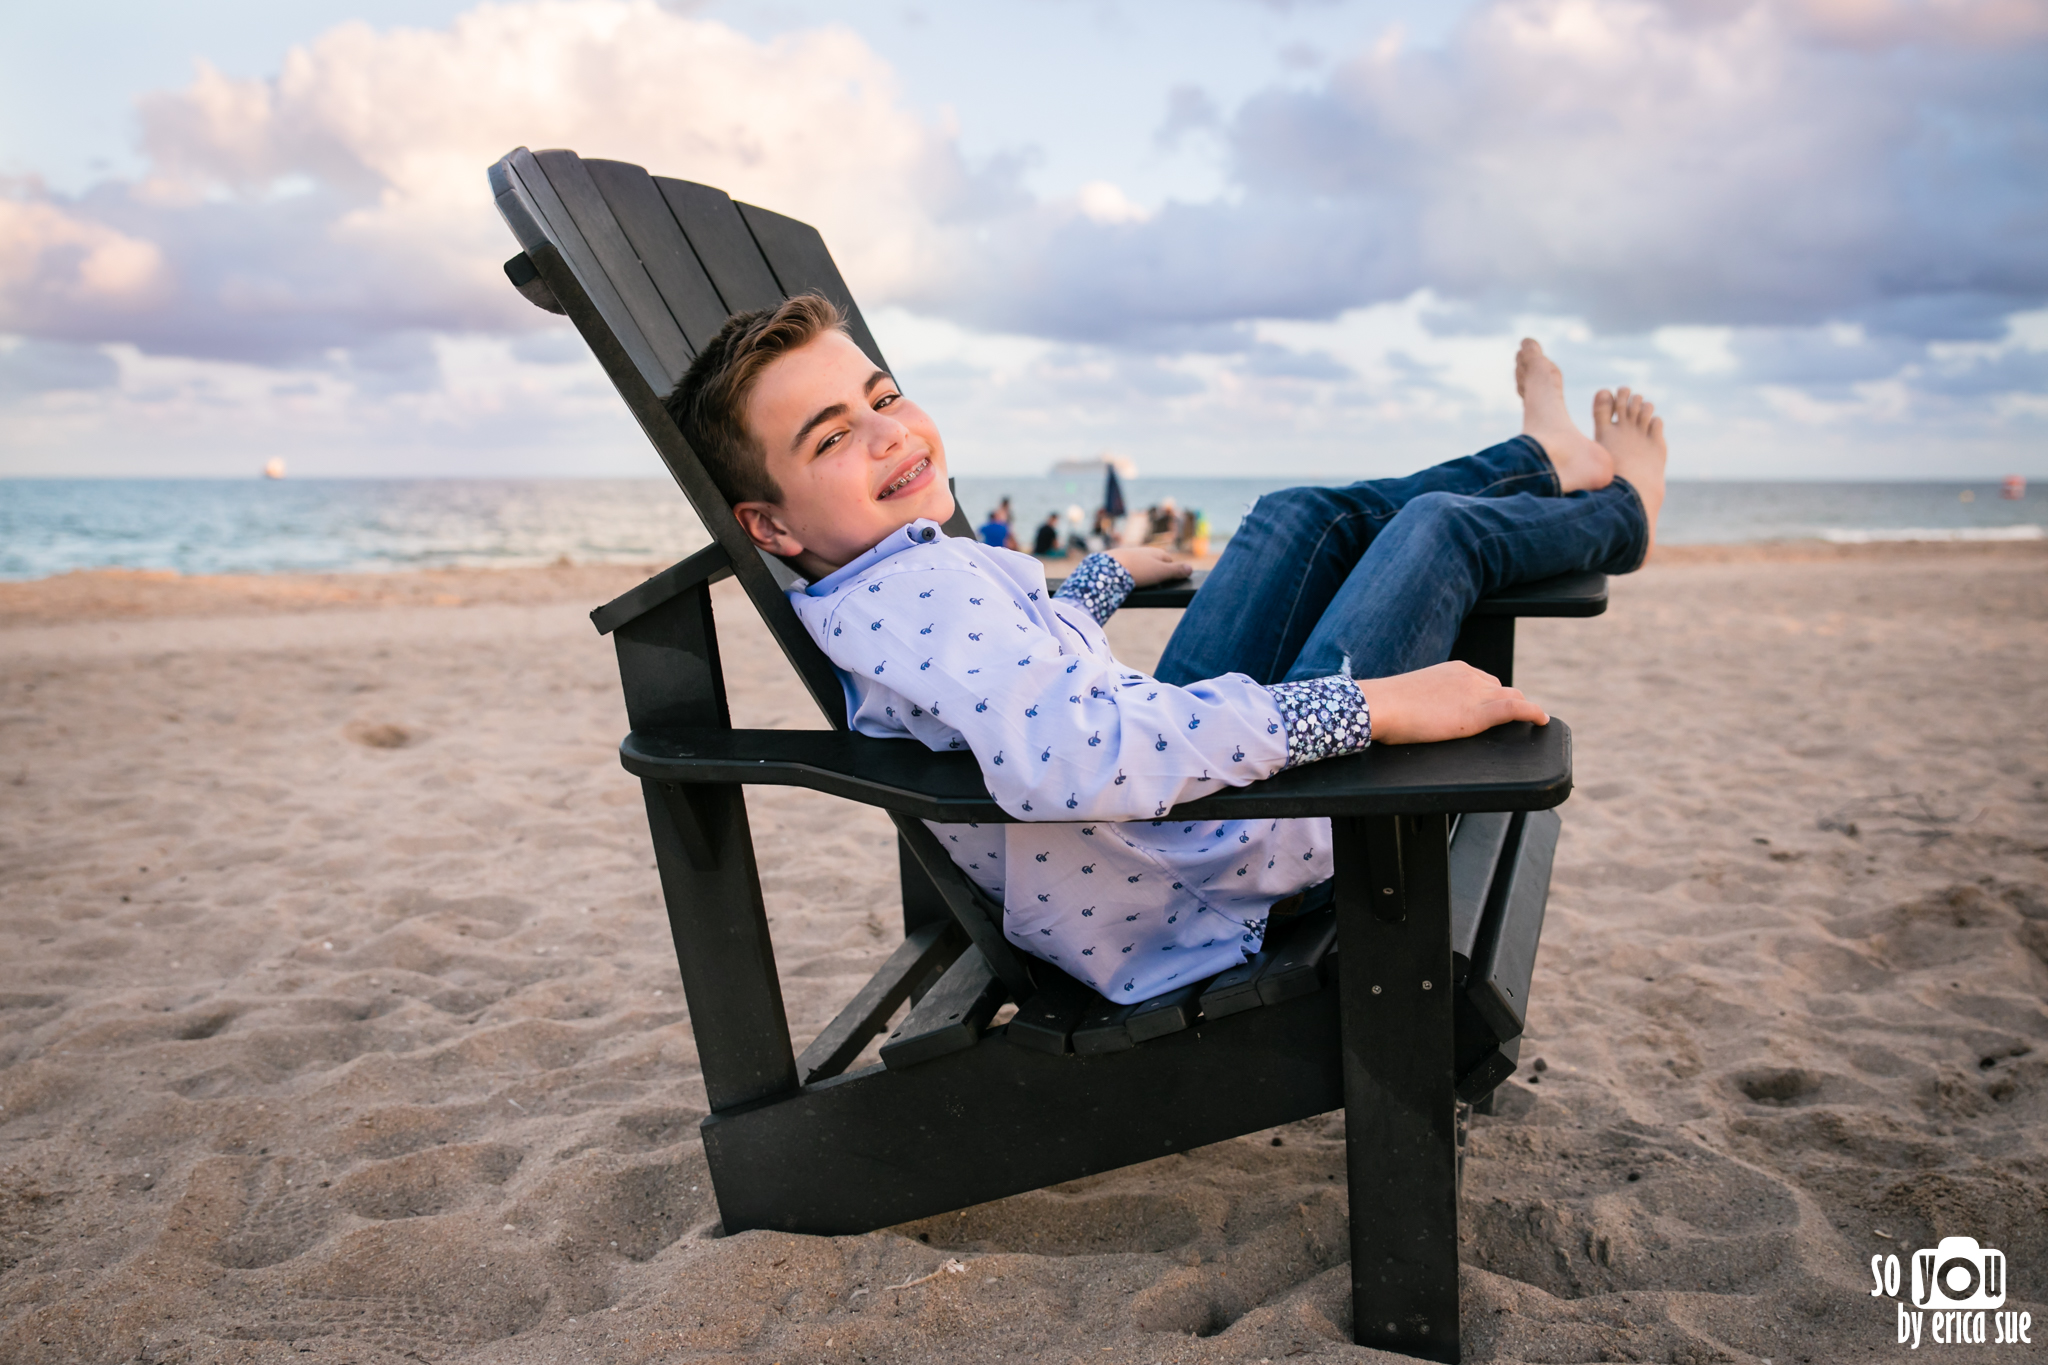 bar-mitzvay-pre-shoot-family-photography-so-you-by-erica-sue-ft-lauderdale-fl-florida-beach-9180.jpg